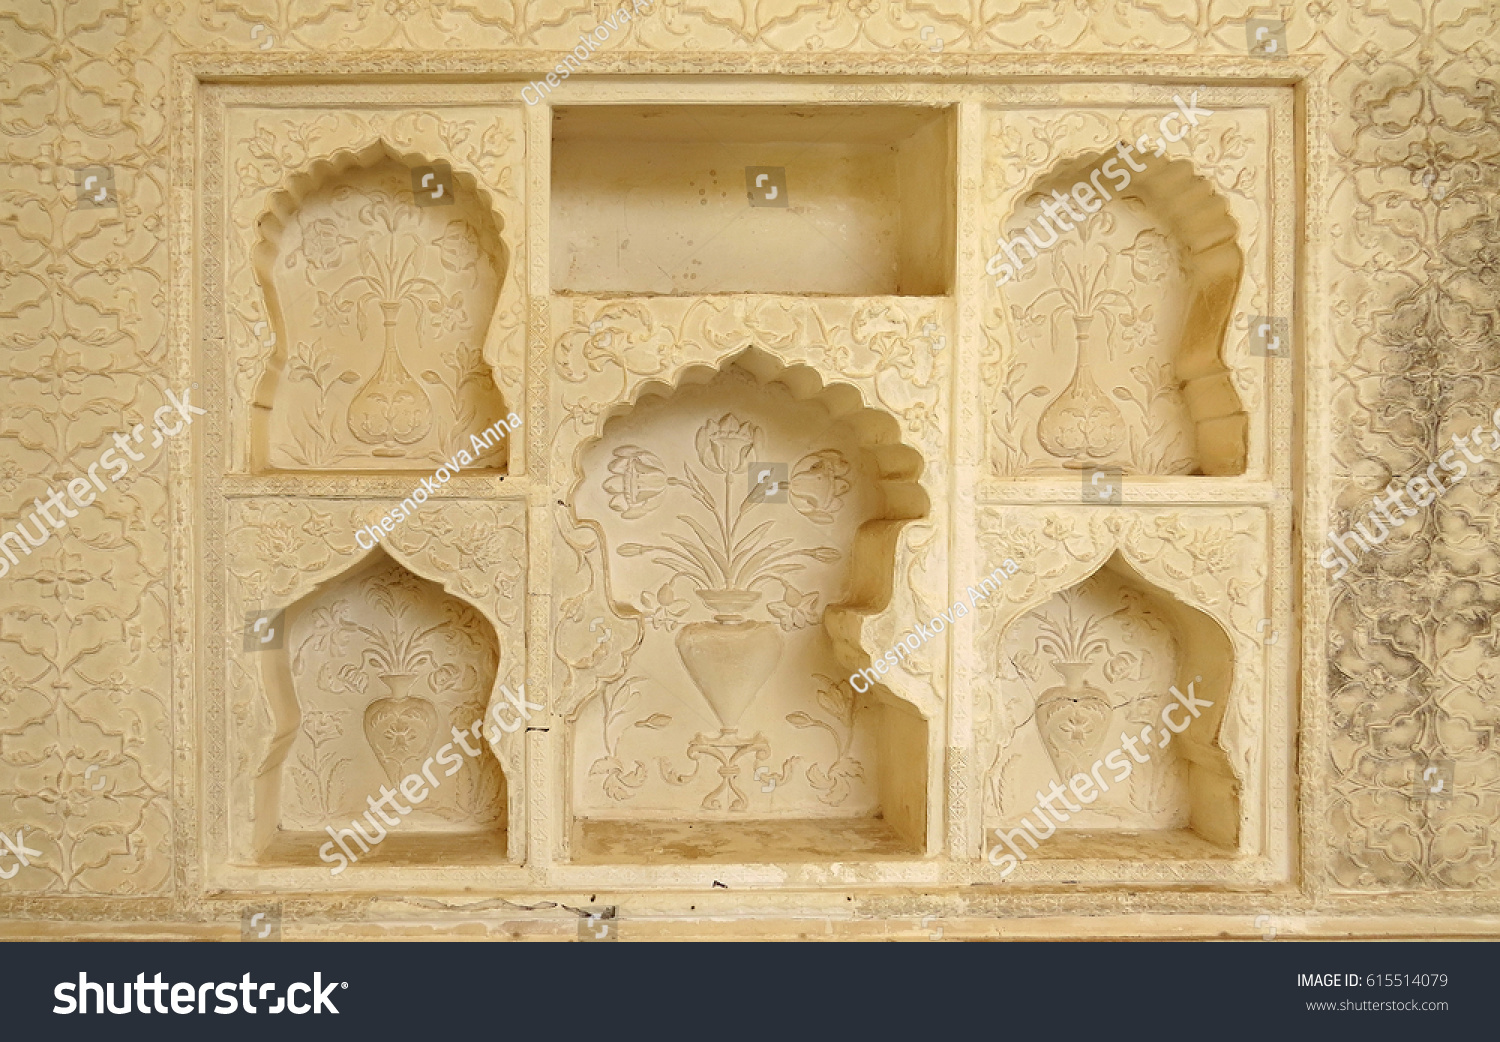 Nichedecorated Wall One Parts Ancient Palace Stock Photo (Royalty ...